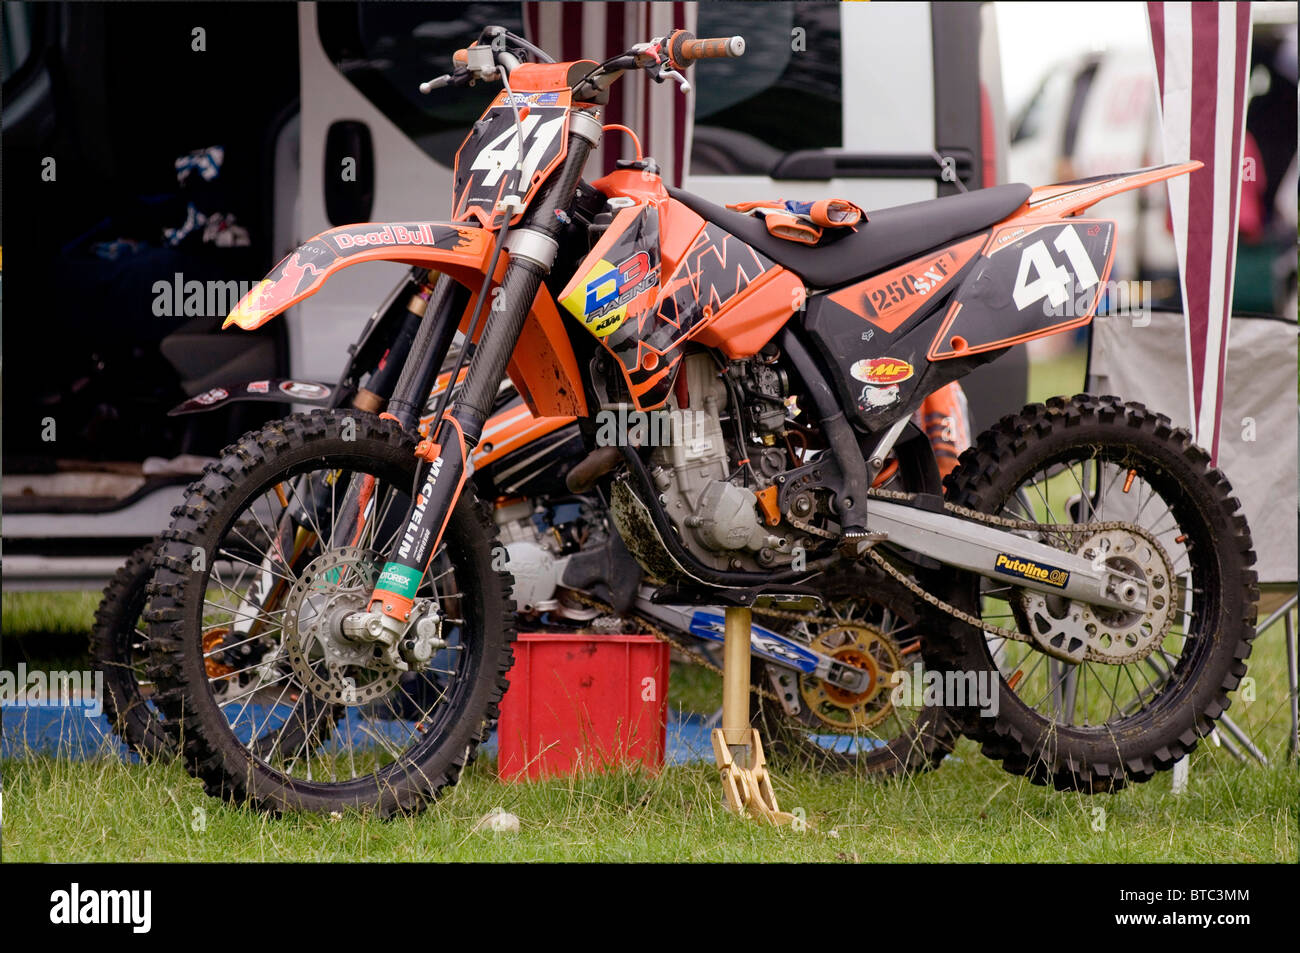 motorcross bike motocross motor moto cross X ktm off road racing cycle cycles bikes chunky tires tire tyres tyre - Stock Image